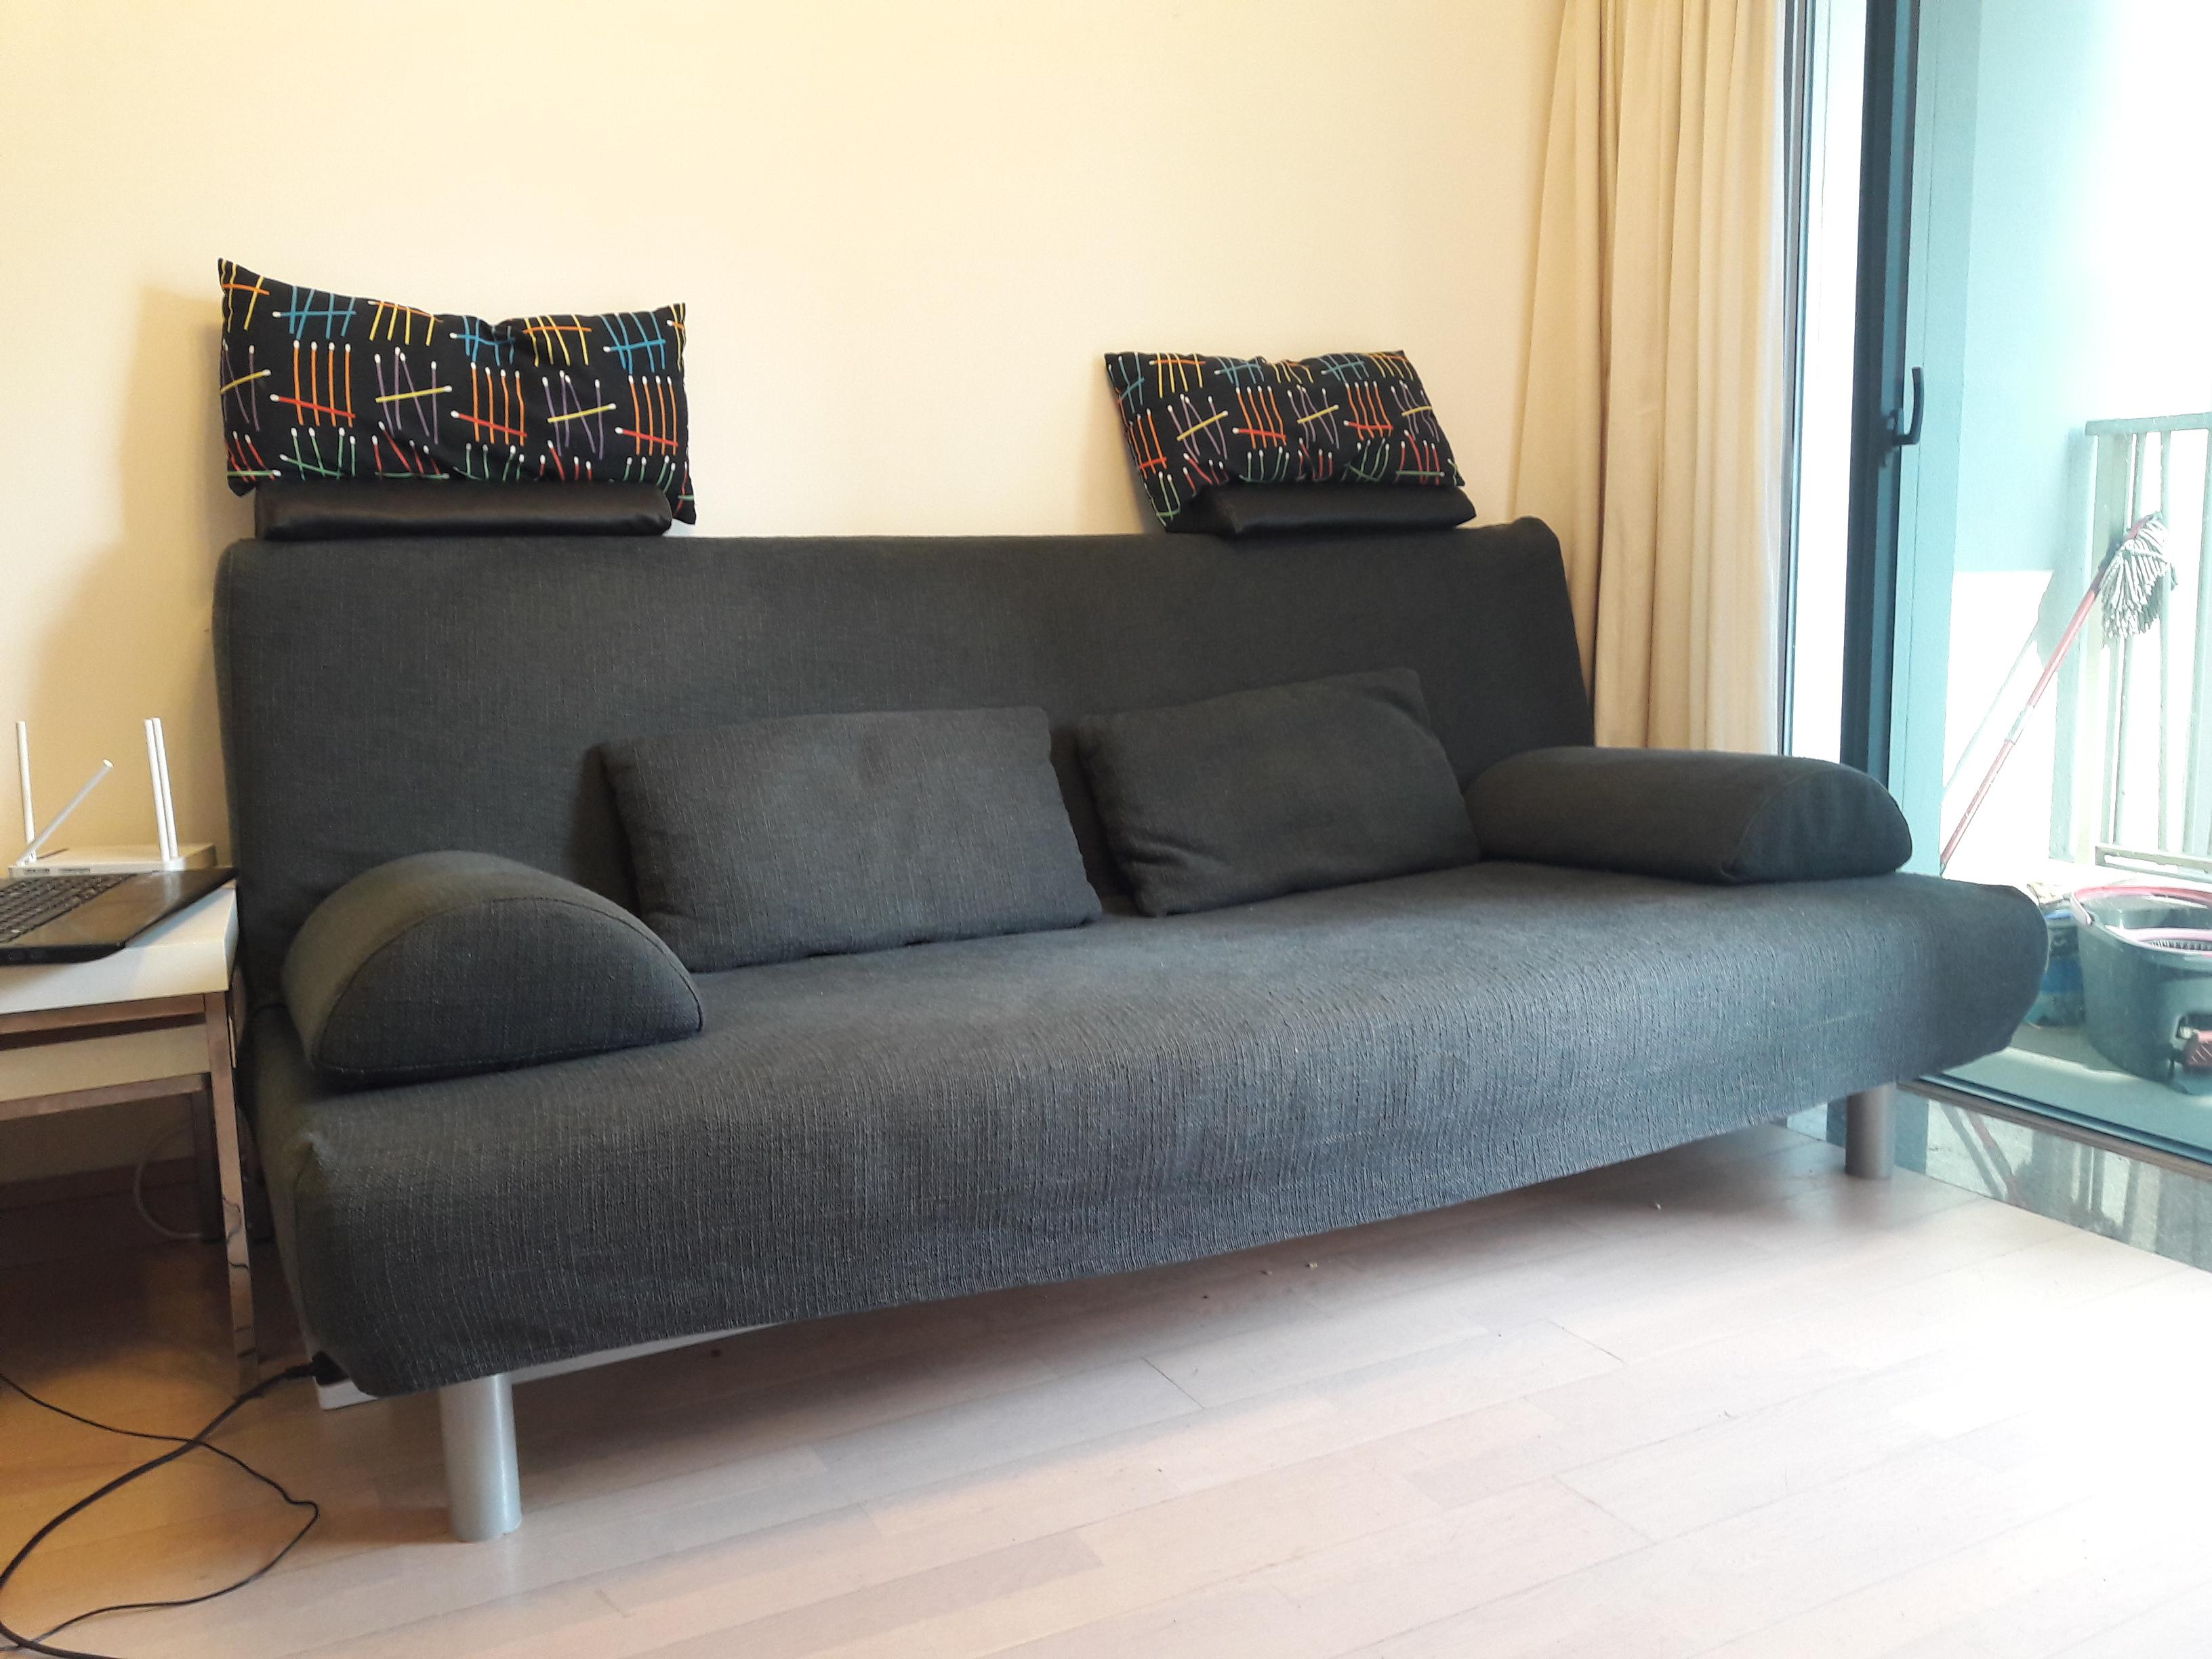 BEDDINGE sofa bed   All must go furniture for relocation ...